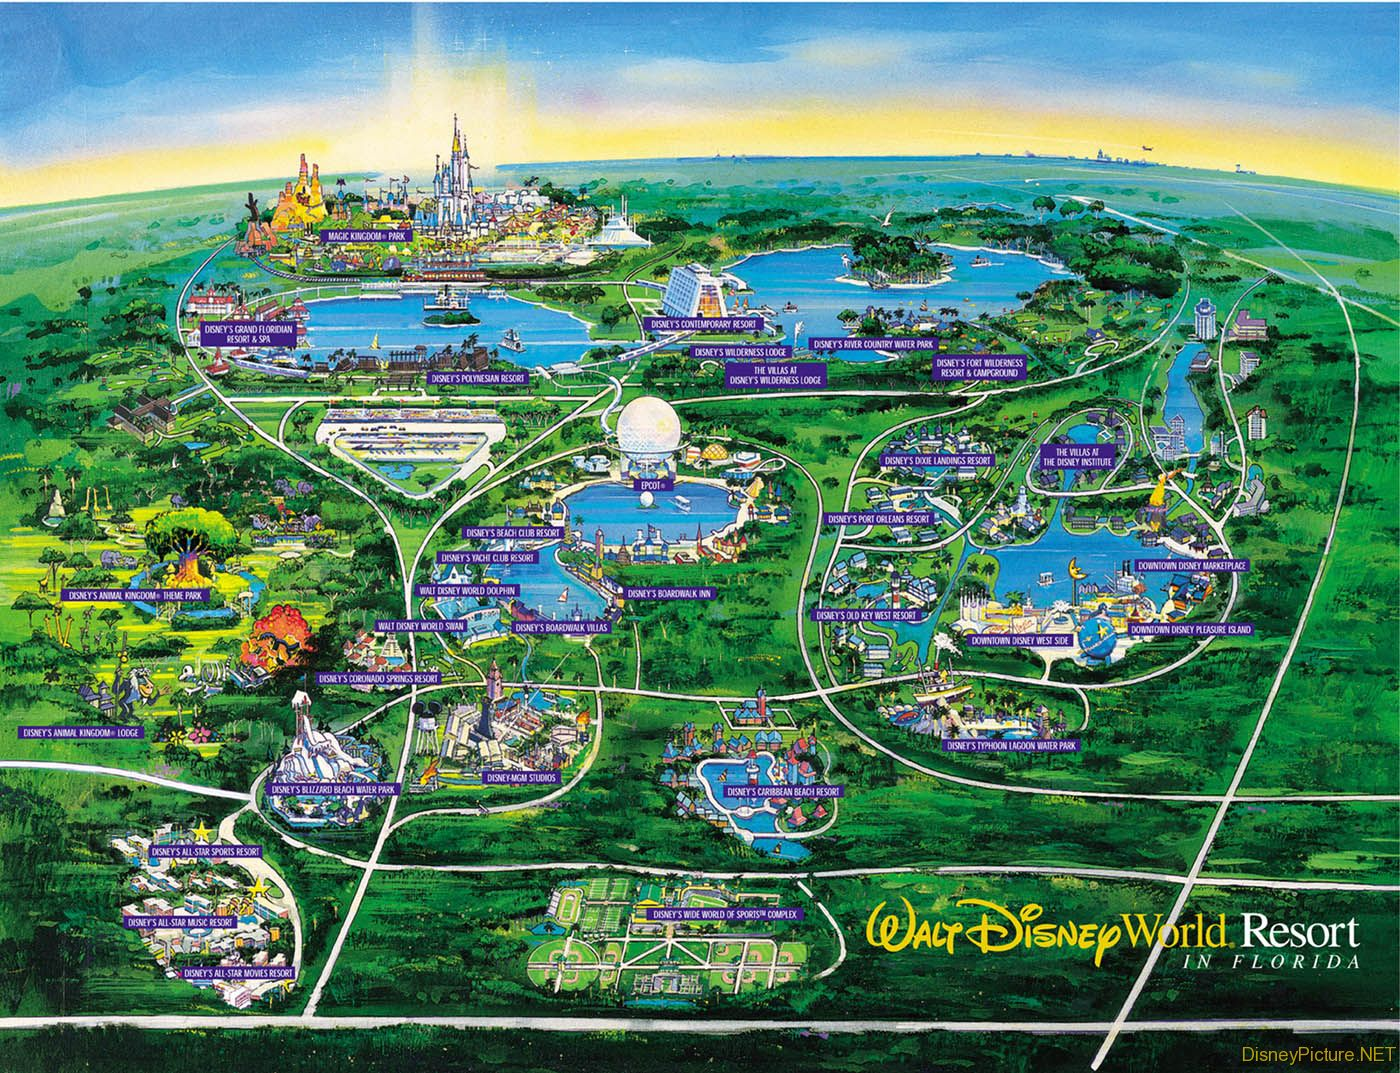 Overall view of Disney Resort